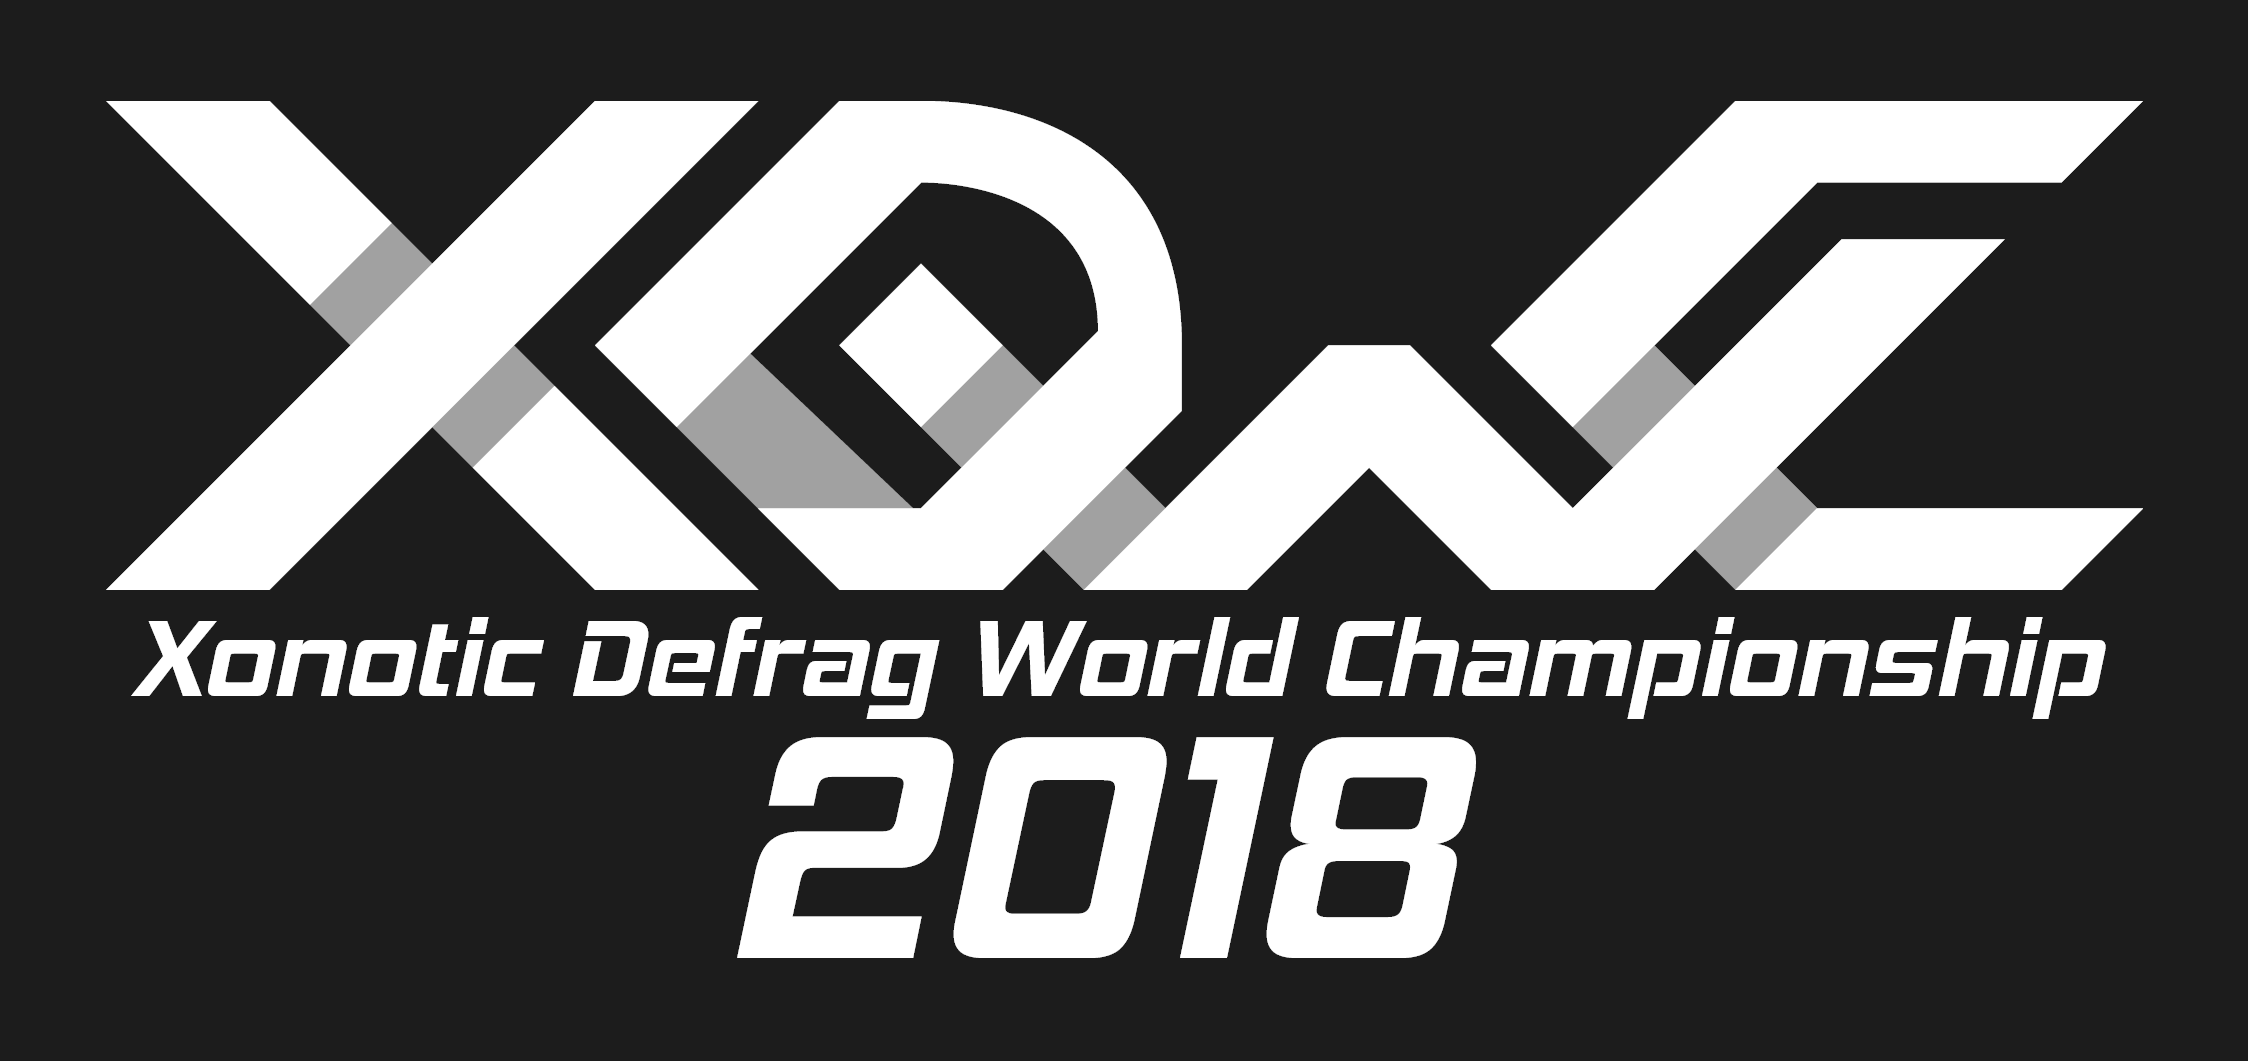 logo Xonotic Defrag World Championship